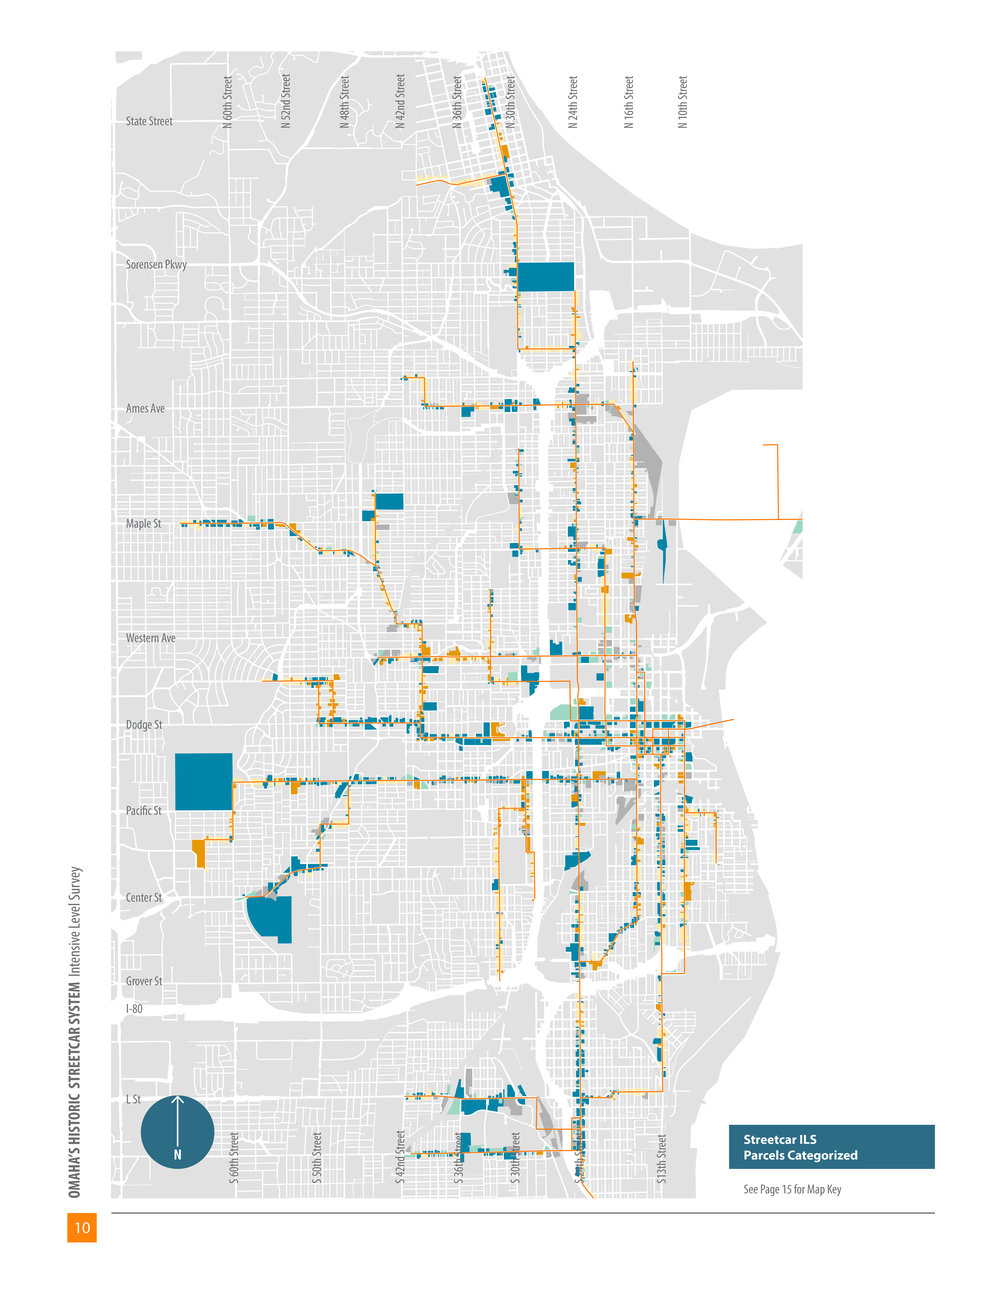 Streetcar ILS Parcels Categorized